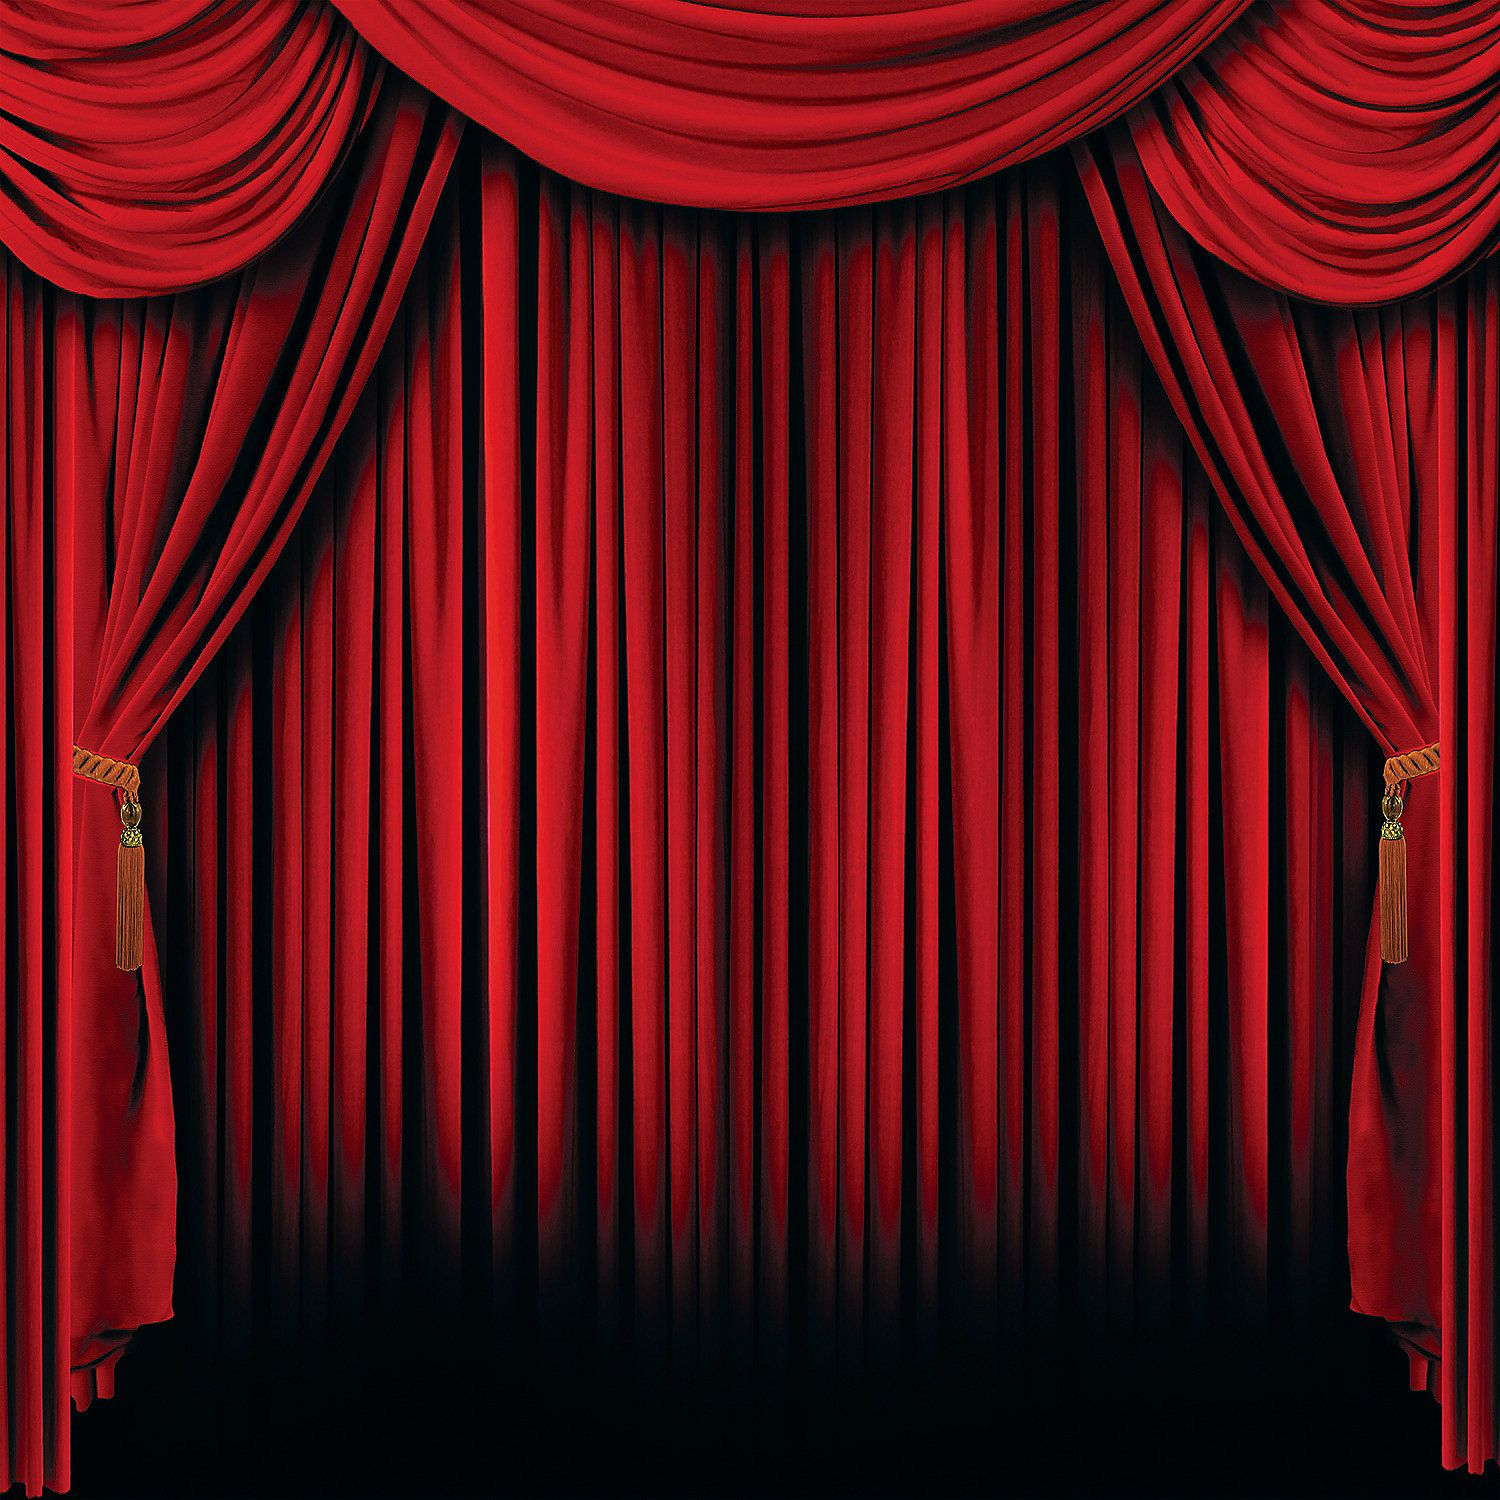 Curtains clipart big red. Curtain backdrop pinterest backdrops